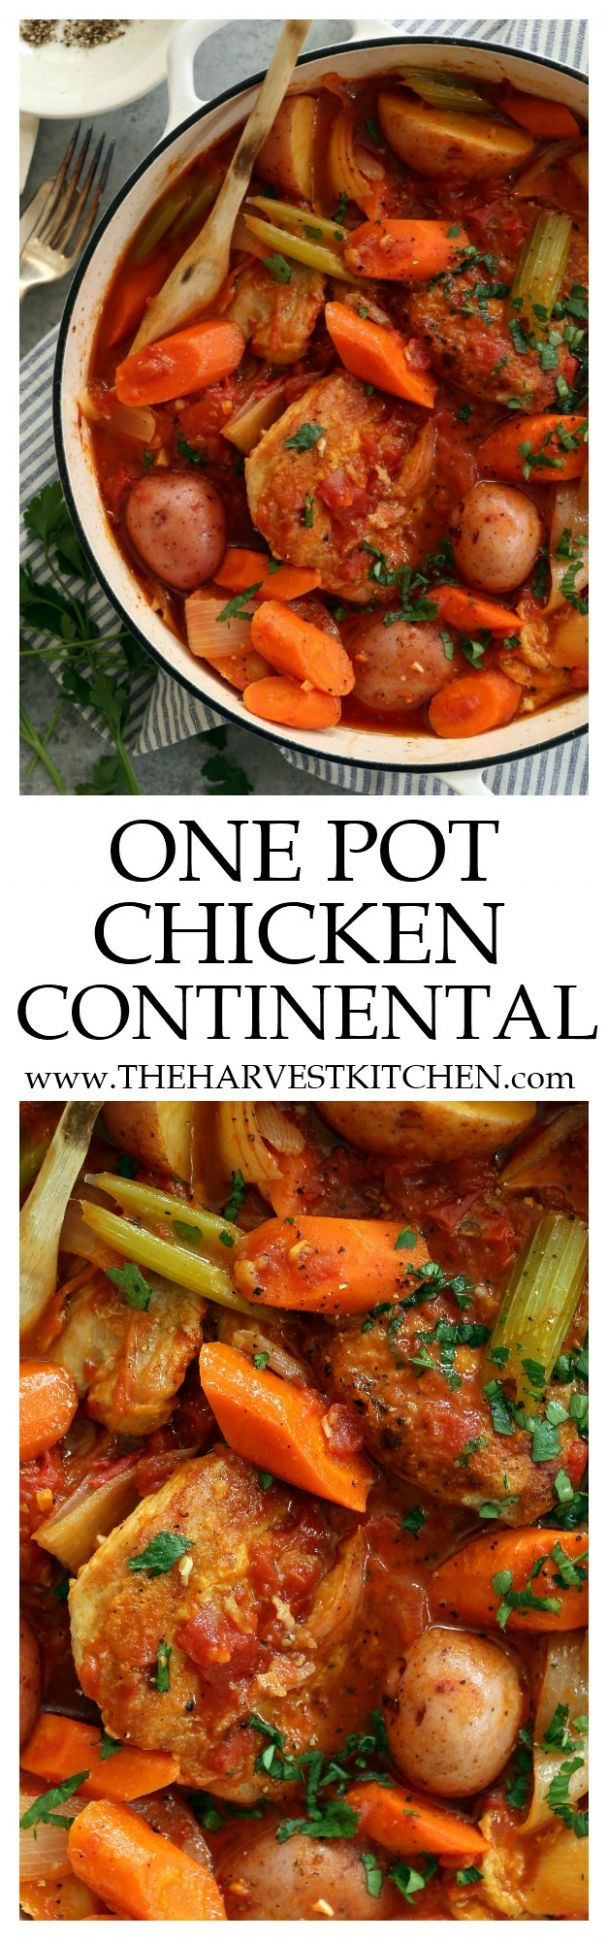 Chicken Continental - The Harvest Kitchen - Food Recipes Continental